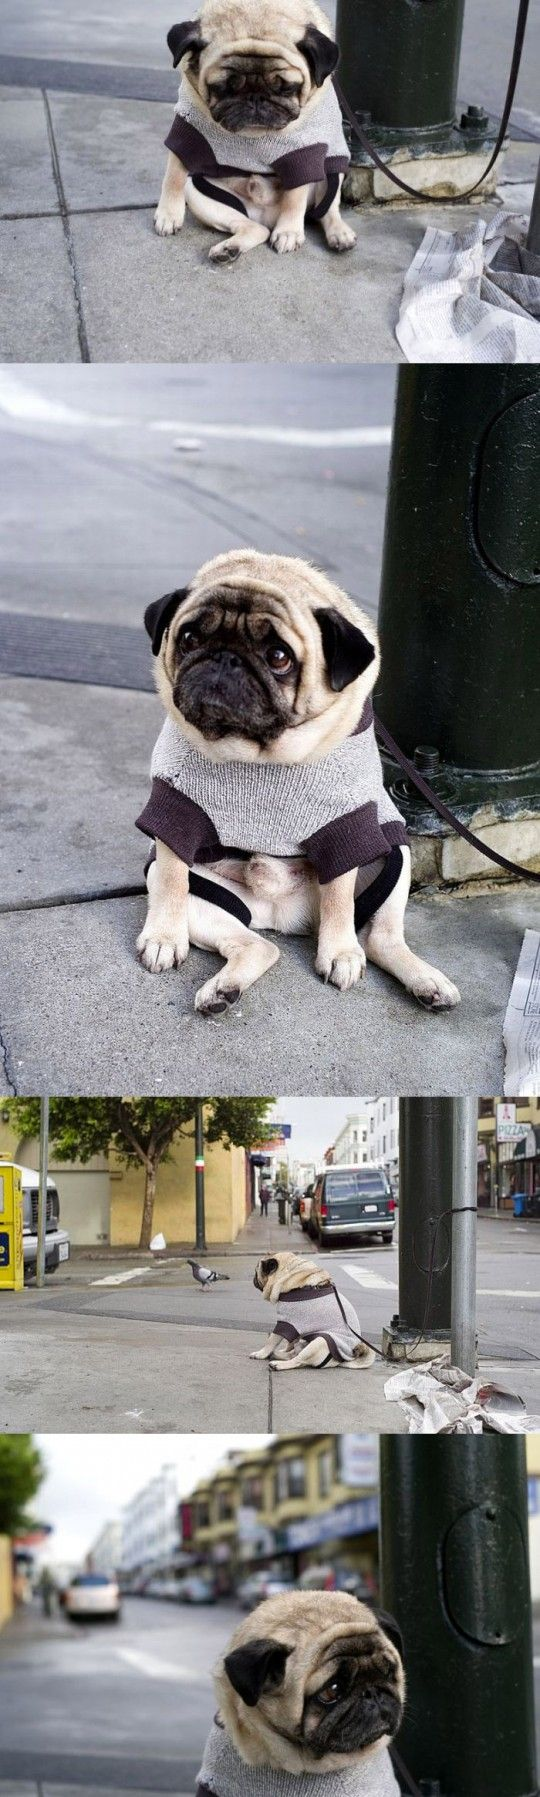 A Depressed Pug... look at that face!!!: Depressed Pug, Animals, Dogs, Pug Life, Pet, Funny, Pugs, Poor Thing, So Sad